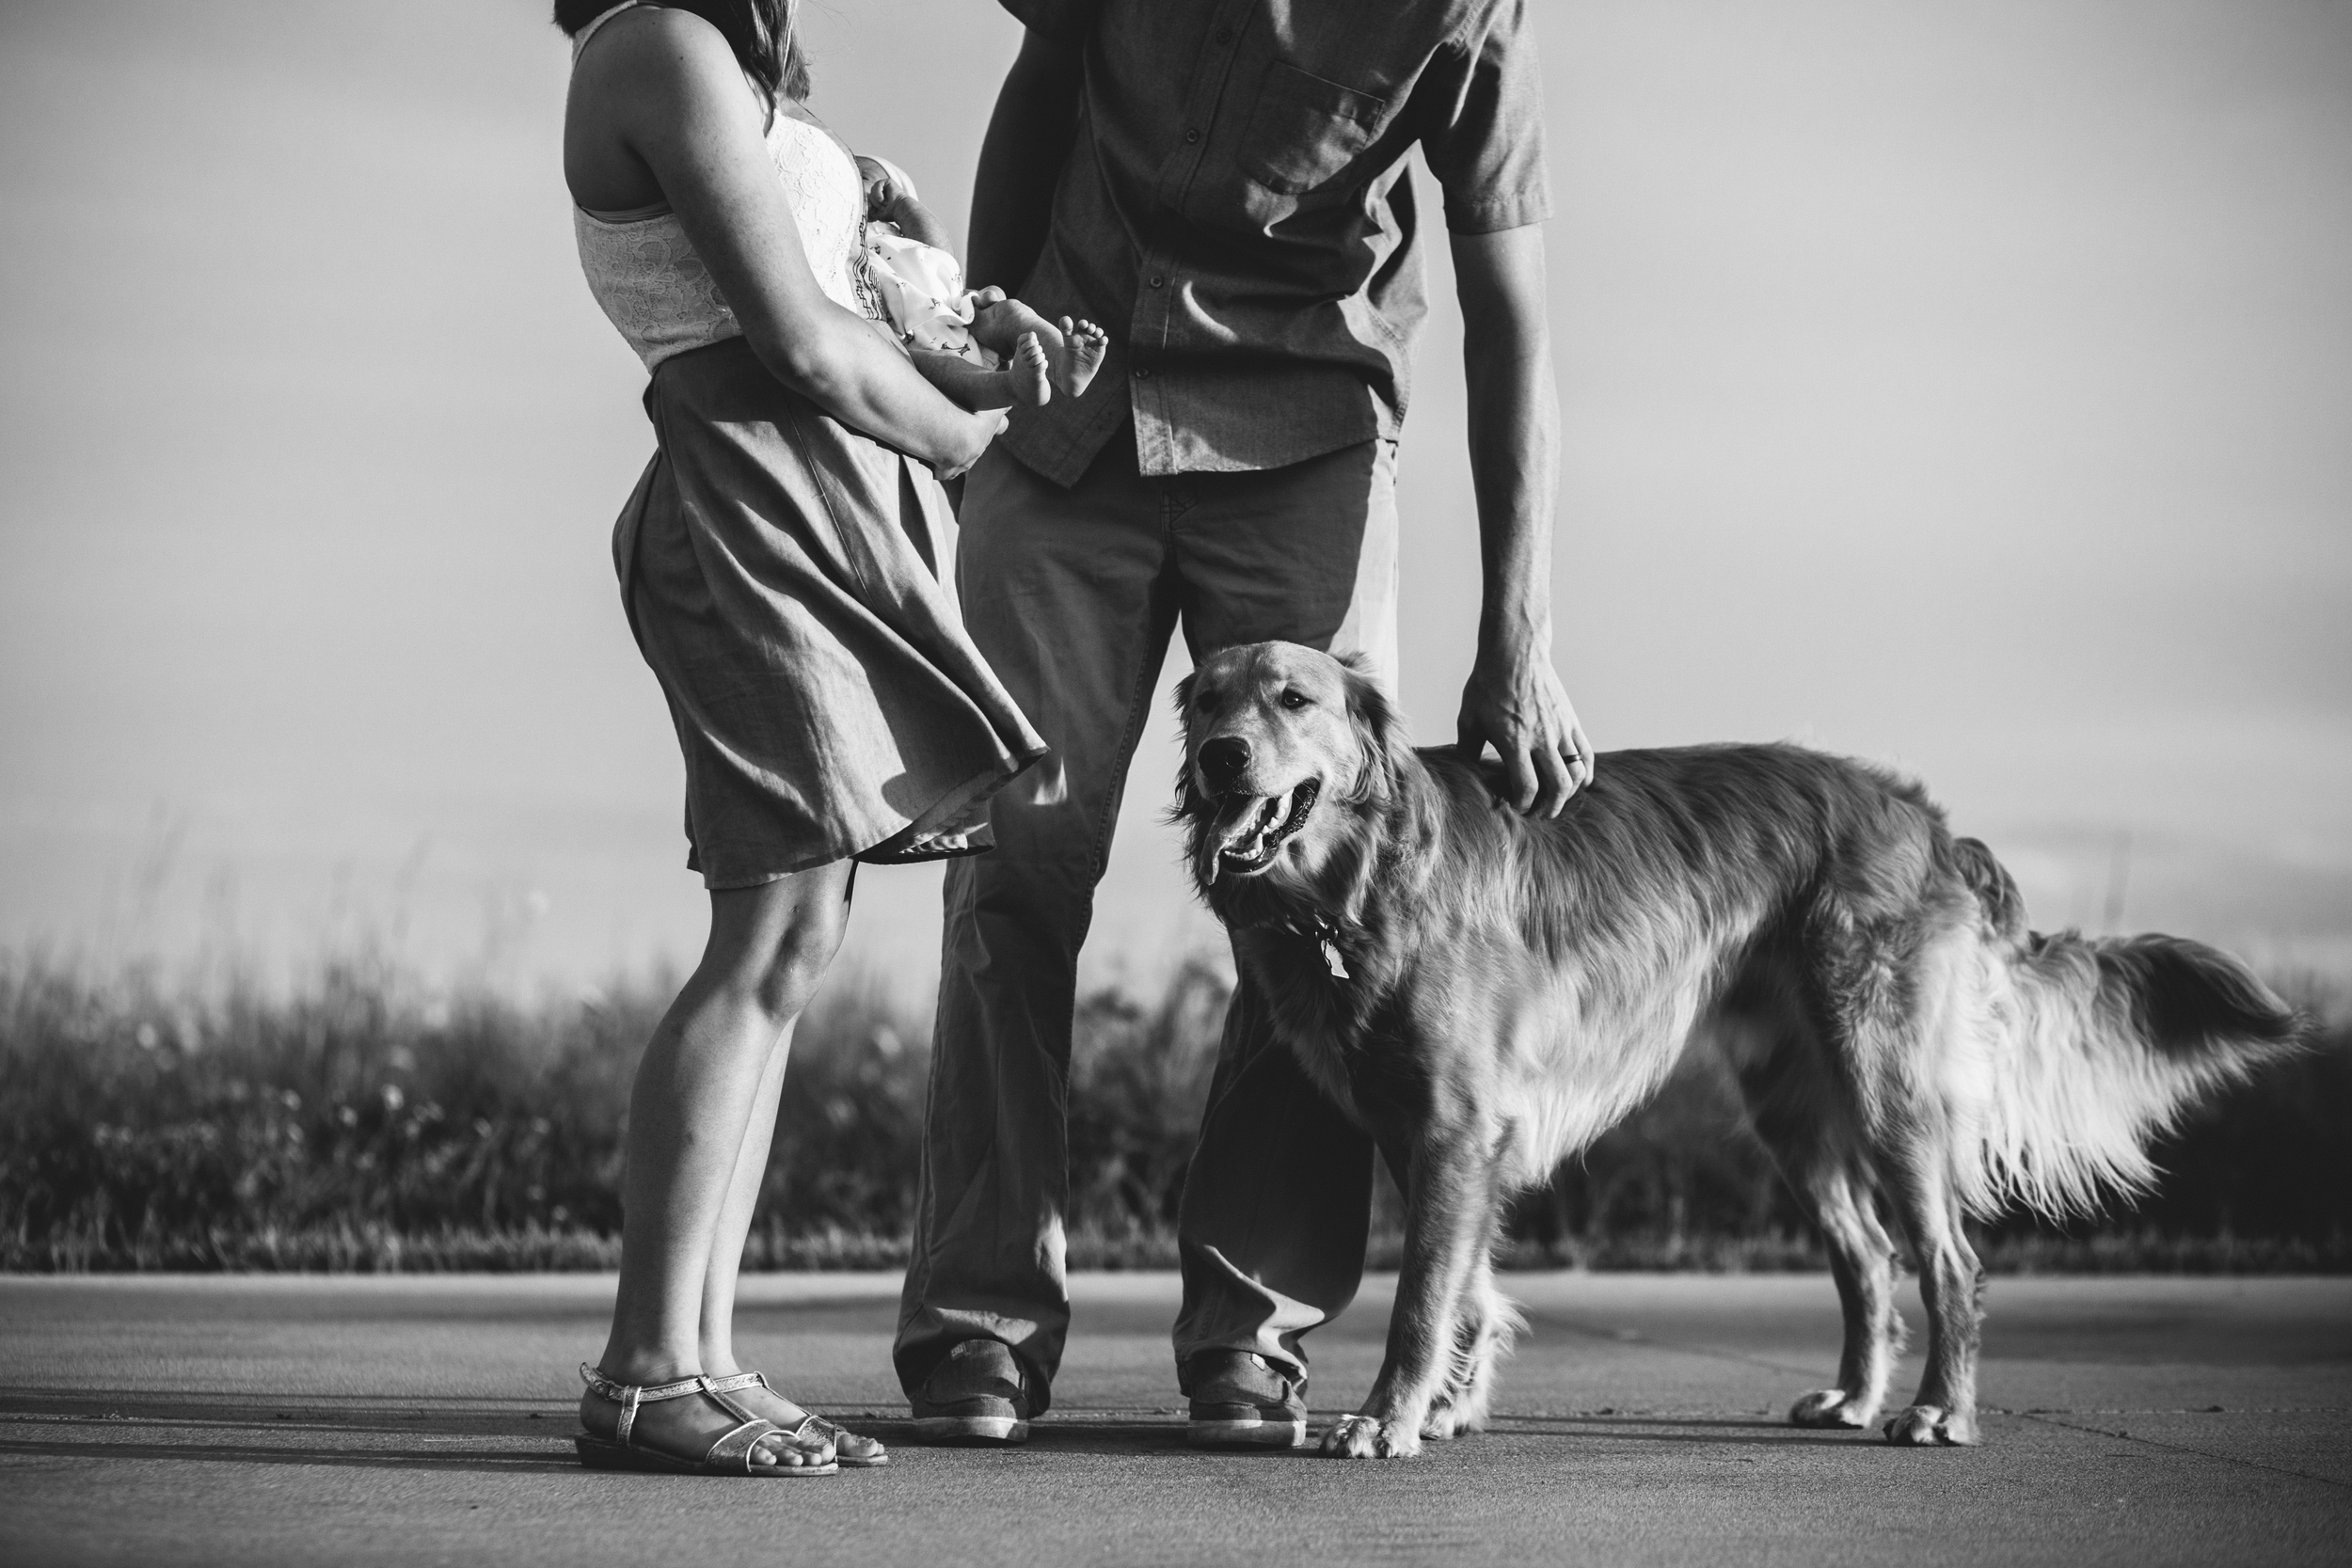 image of mother and father with newborn baby and dog